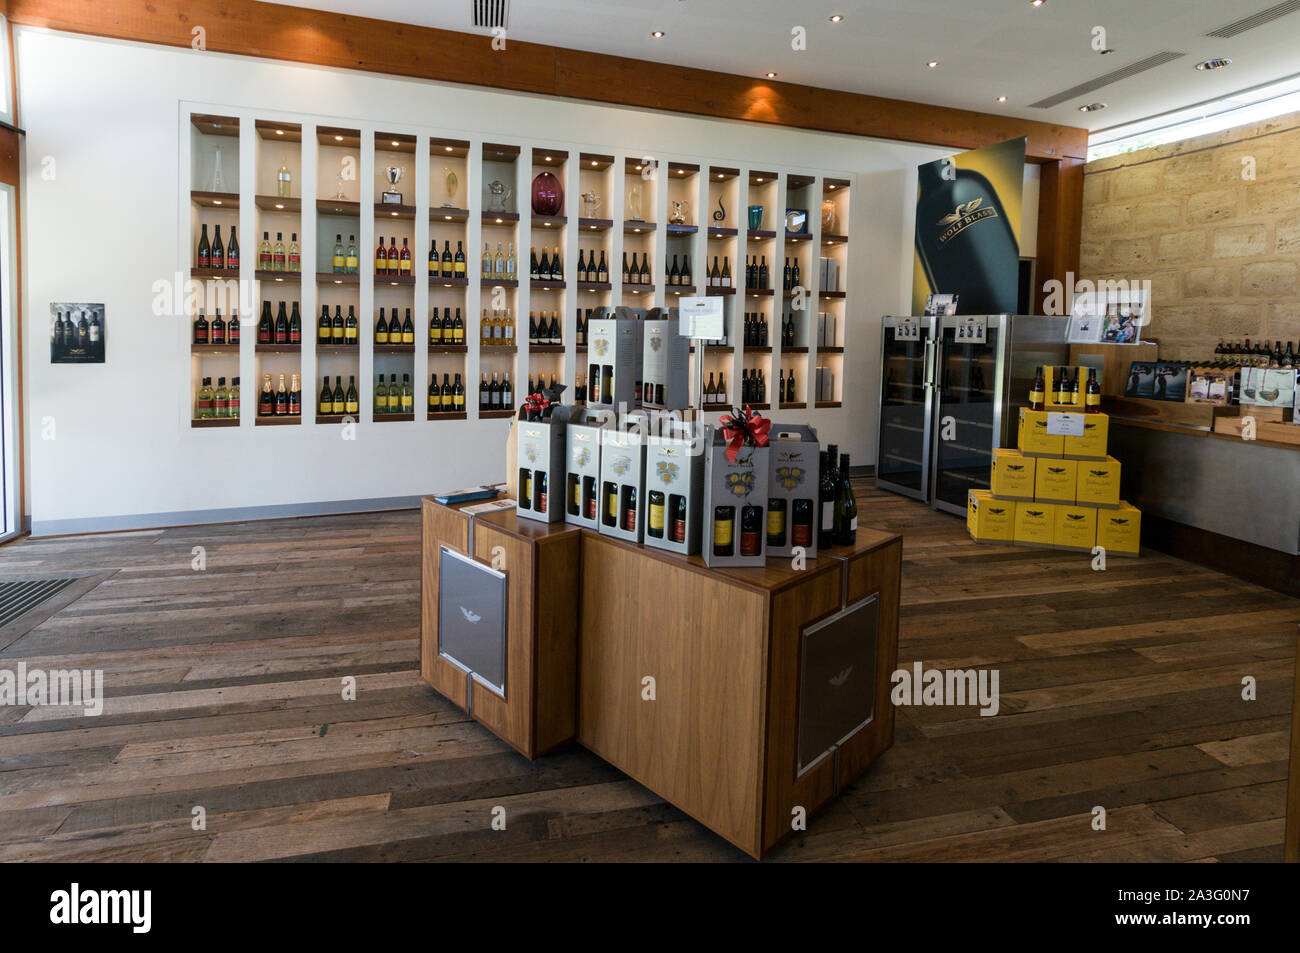 Bottles of wines on sale and display at the Wolf Blass winery visitors centre in the Barossa Valley wine region in South Australia.   There are about Stock Photo